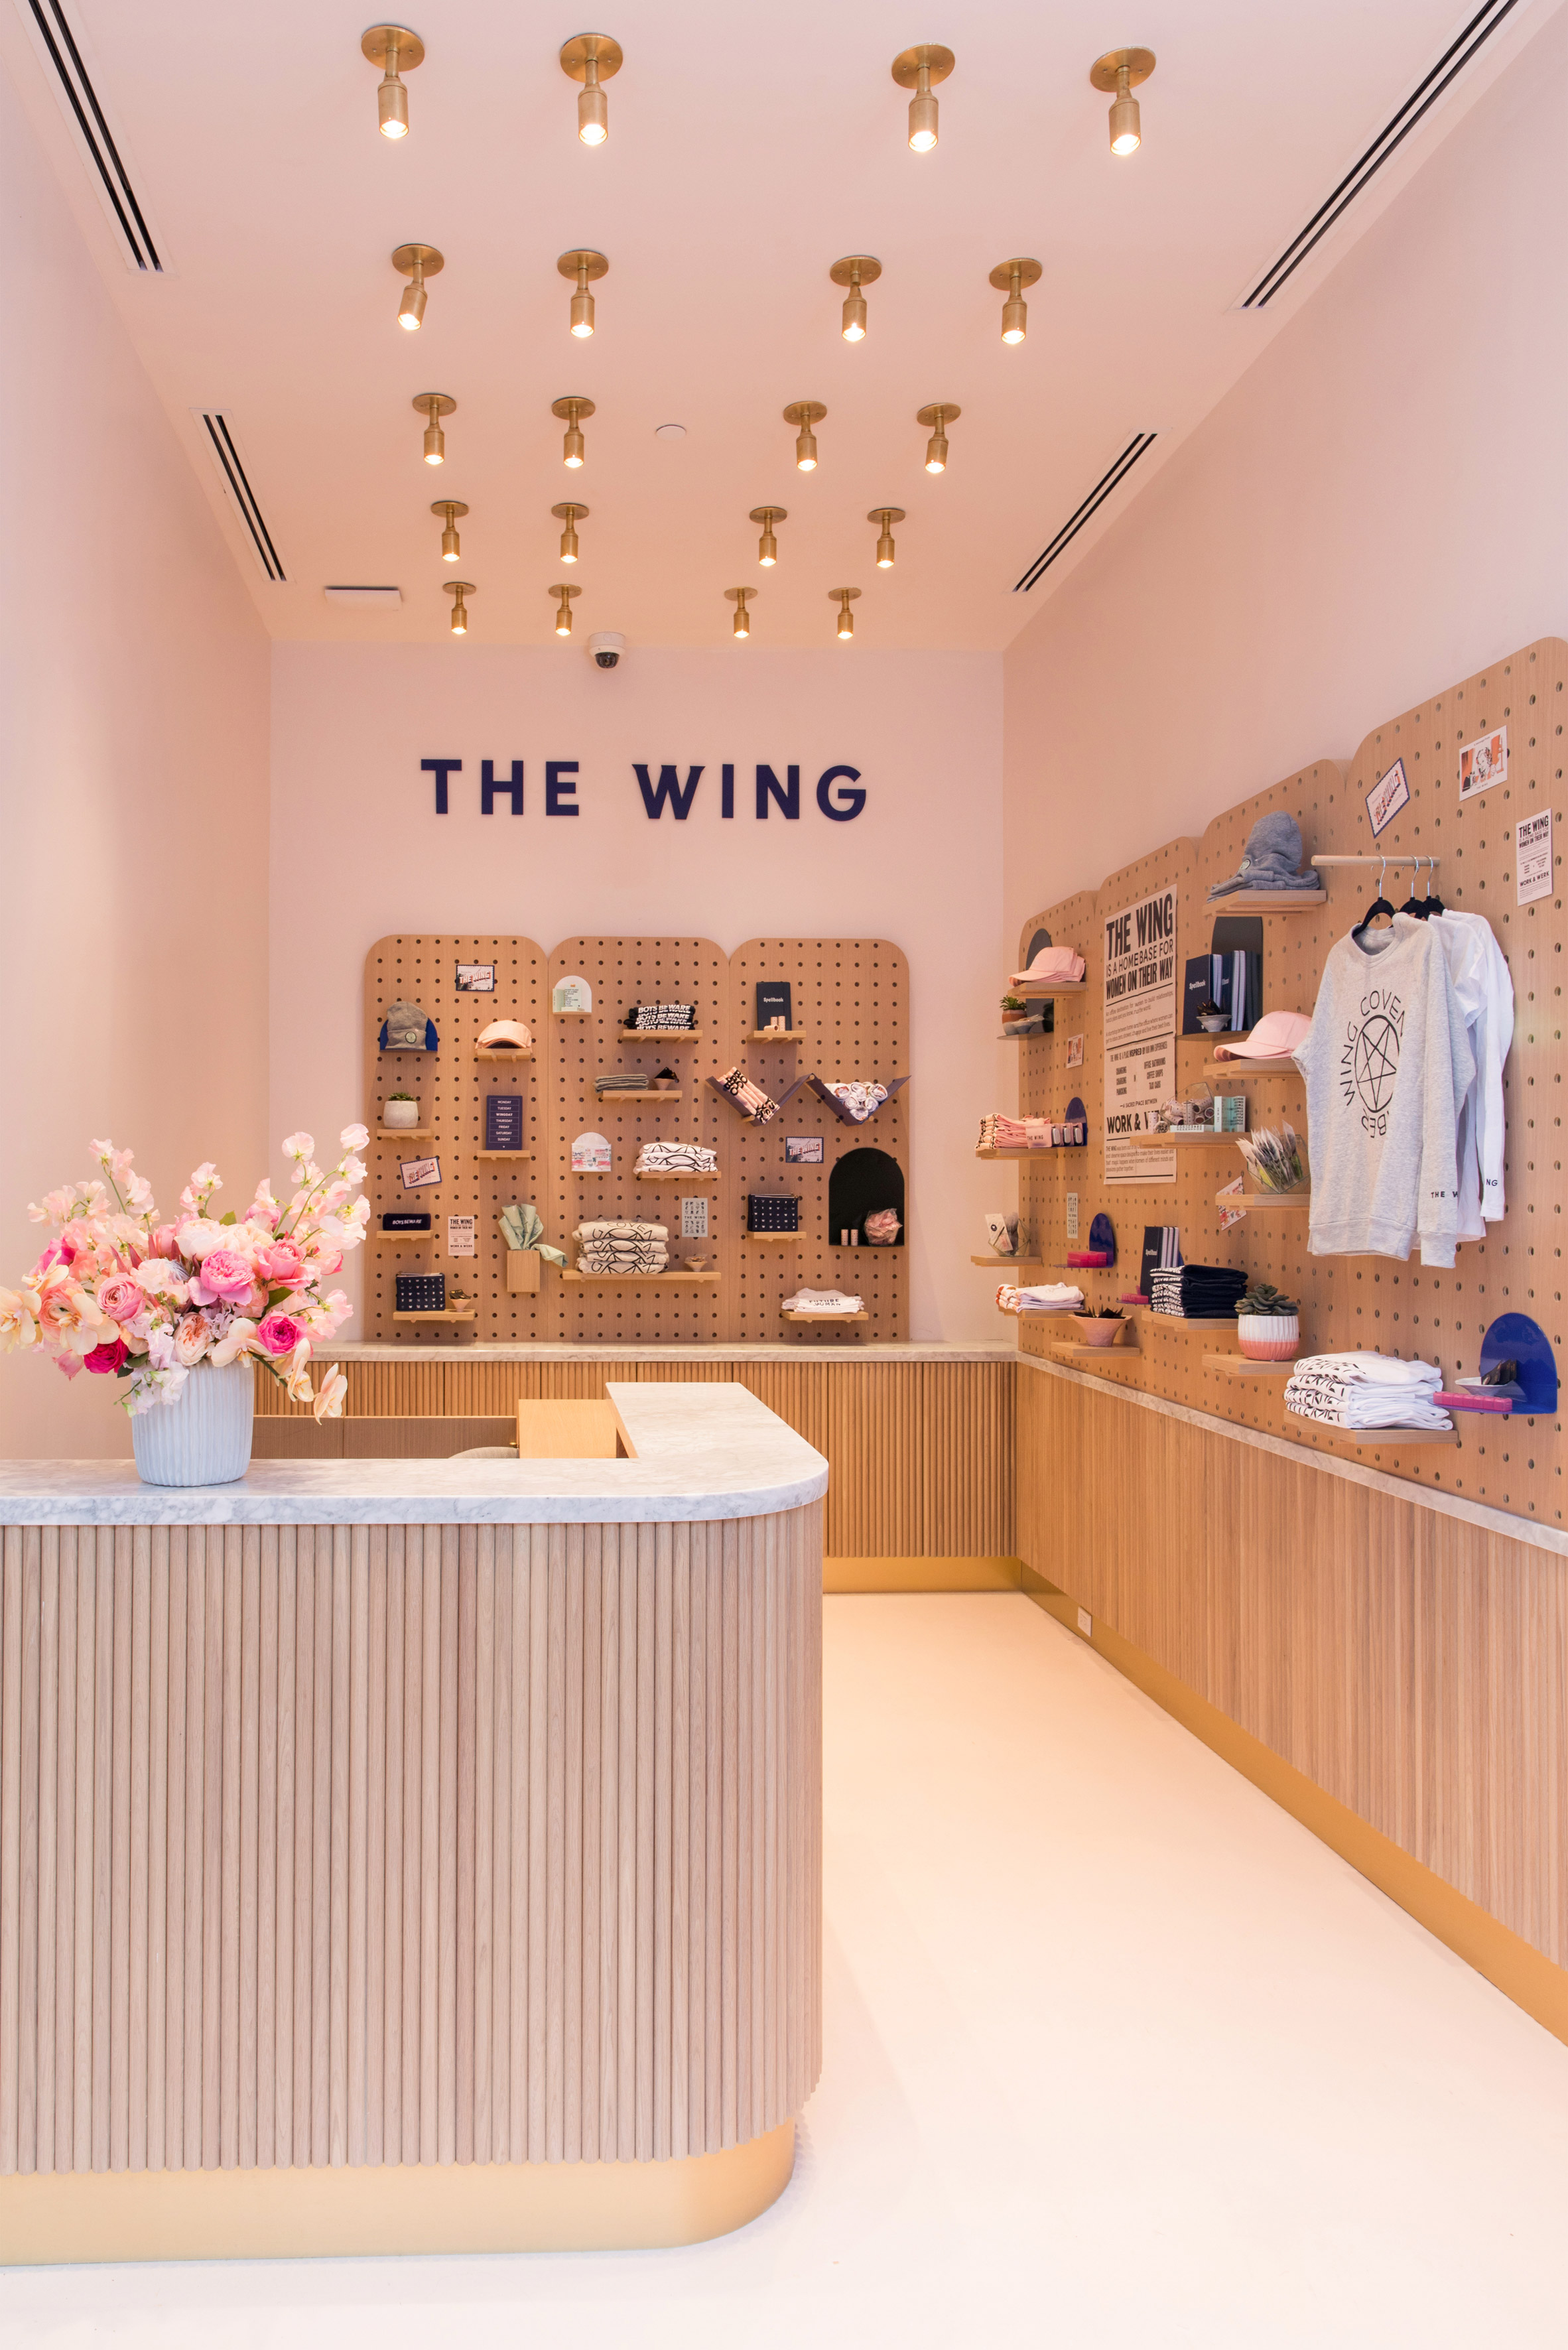 The checkout and retail area of The Wing Dumbo, featuring brand merchandise mounted on a pegboard. MEP Engineering provided by 2L Engineering.